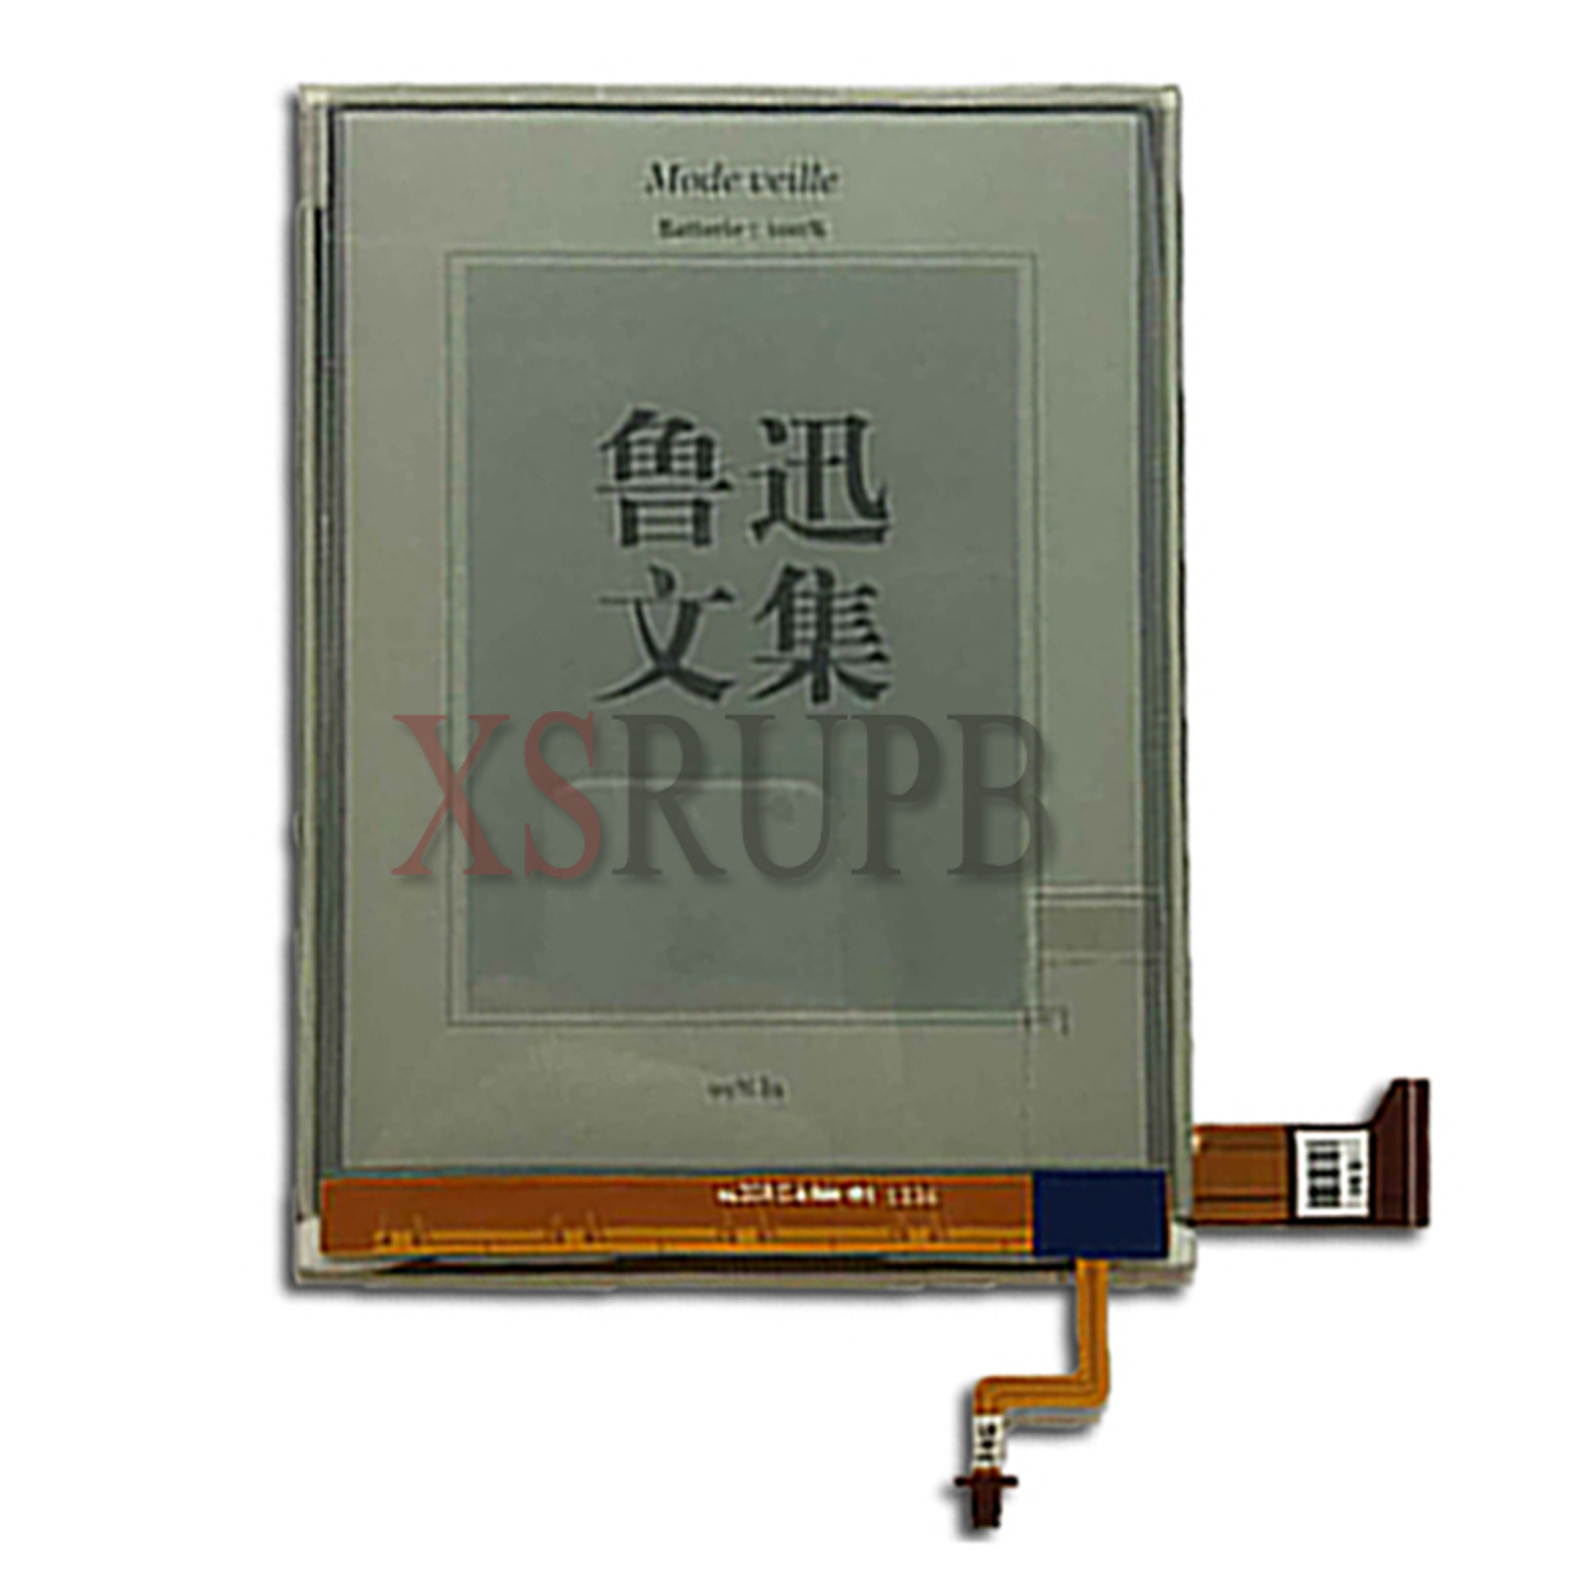 NEW Original E-Ink 758*1024 6.0 inch HD XGA Pearl Screen For bq Nuevo Cervantes 8GB Reader Ebook eReader LCD Display original 7 inch 163 97mm hd 1024 600 lcd for cube u25gt tablet pc lcd screen display panel glass free shipping